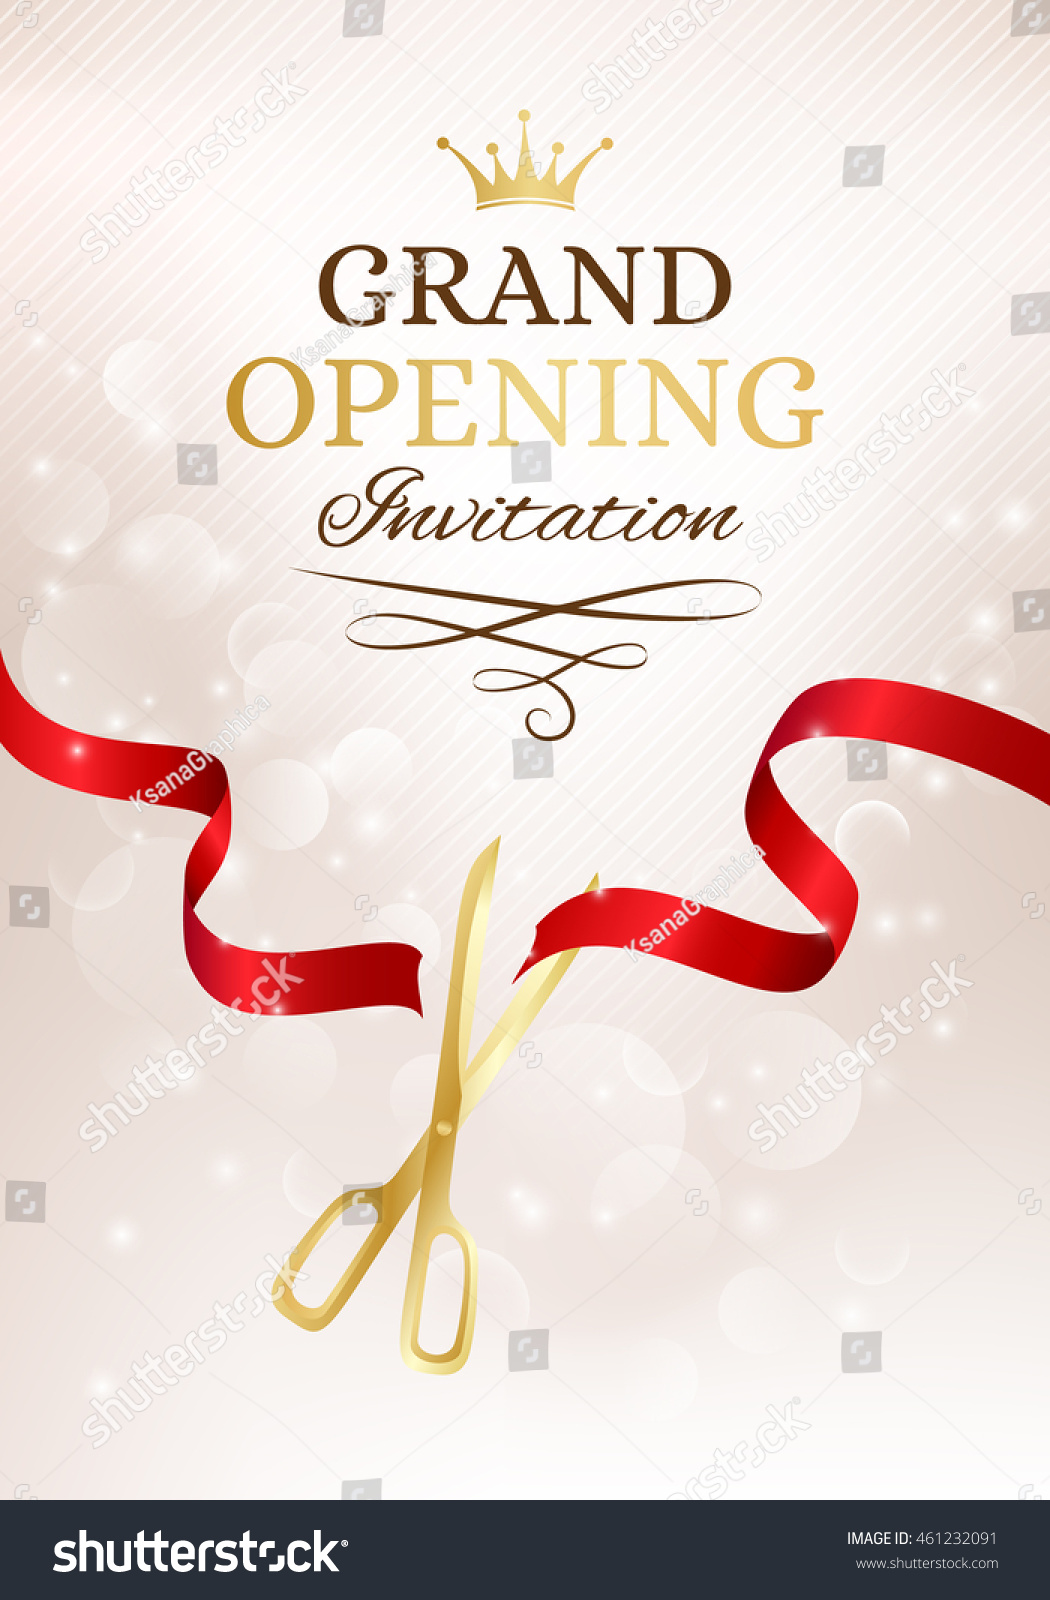 Grand Opening Invitation Card Cut Red Stock Vector ...